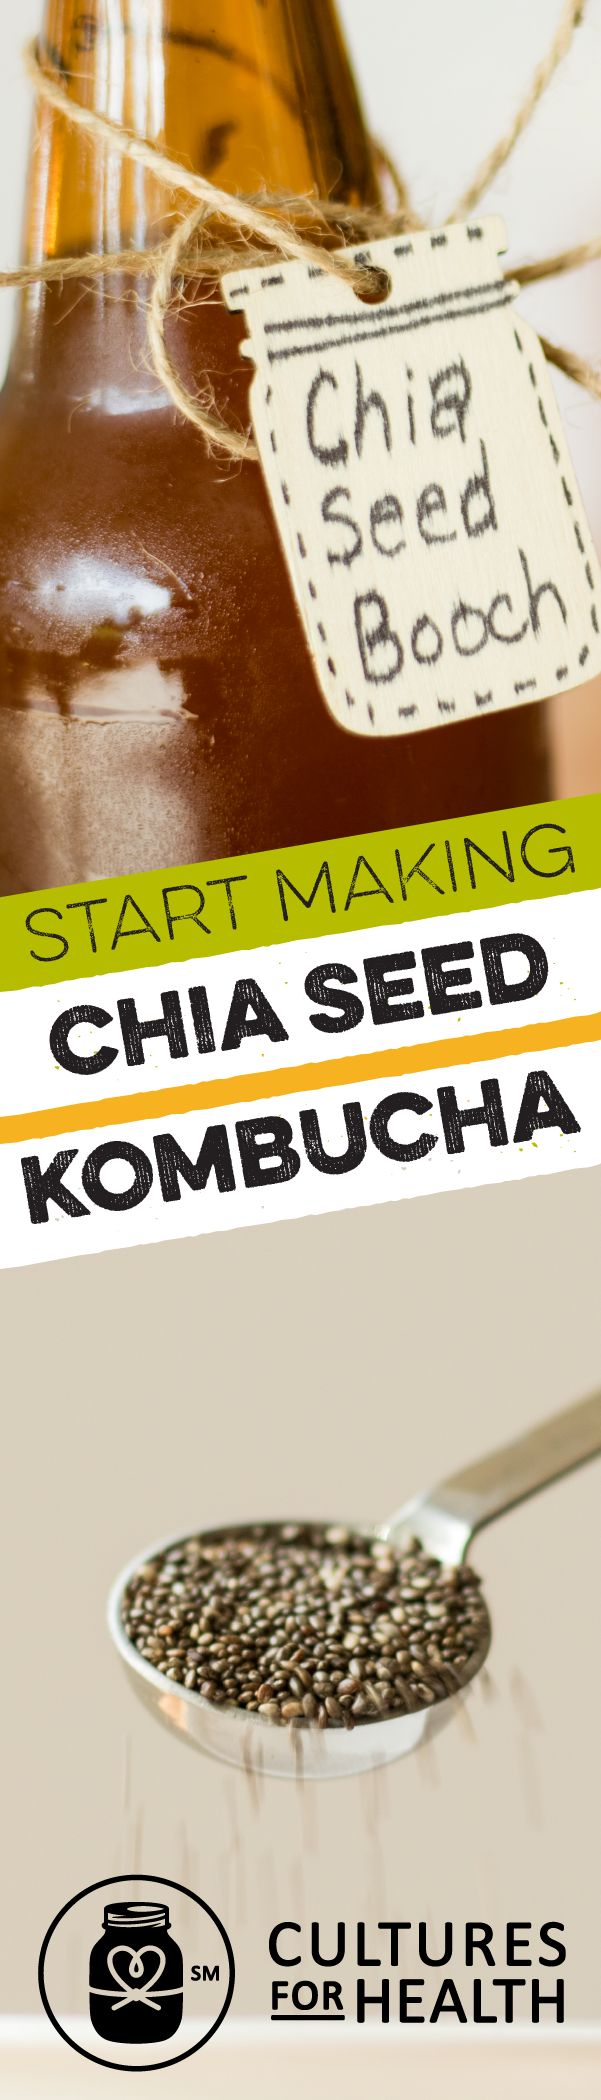 DIY Kit: Learn to make your own chia seed kombucha, a sweet and earthy update to your favorite fermented tea.